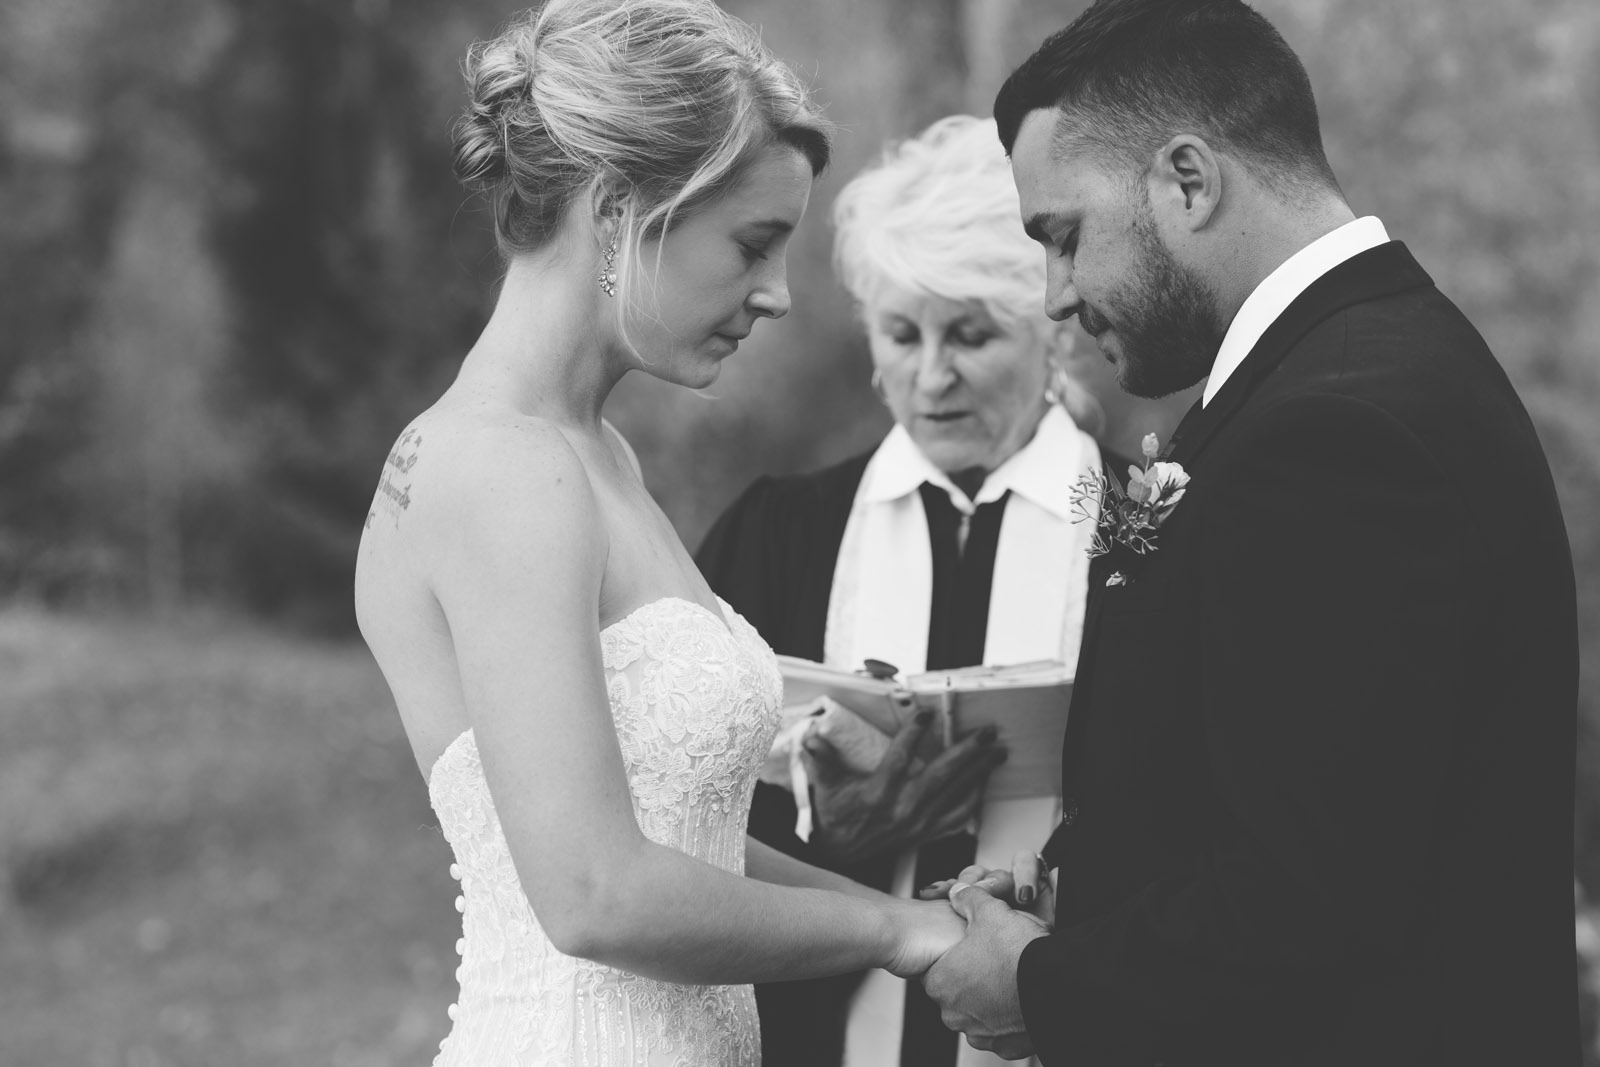 094-bride-and-groom-praying-during-private-elopement-wedding-ceremony-in-durango-co-forest